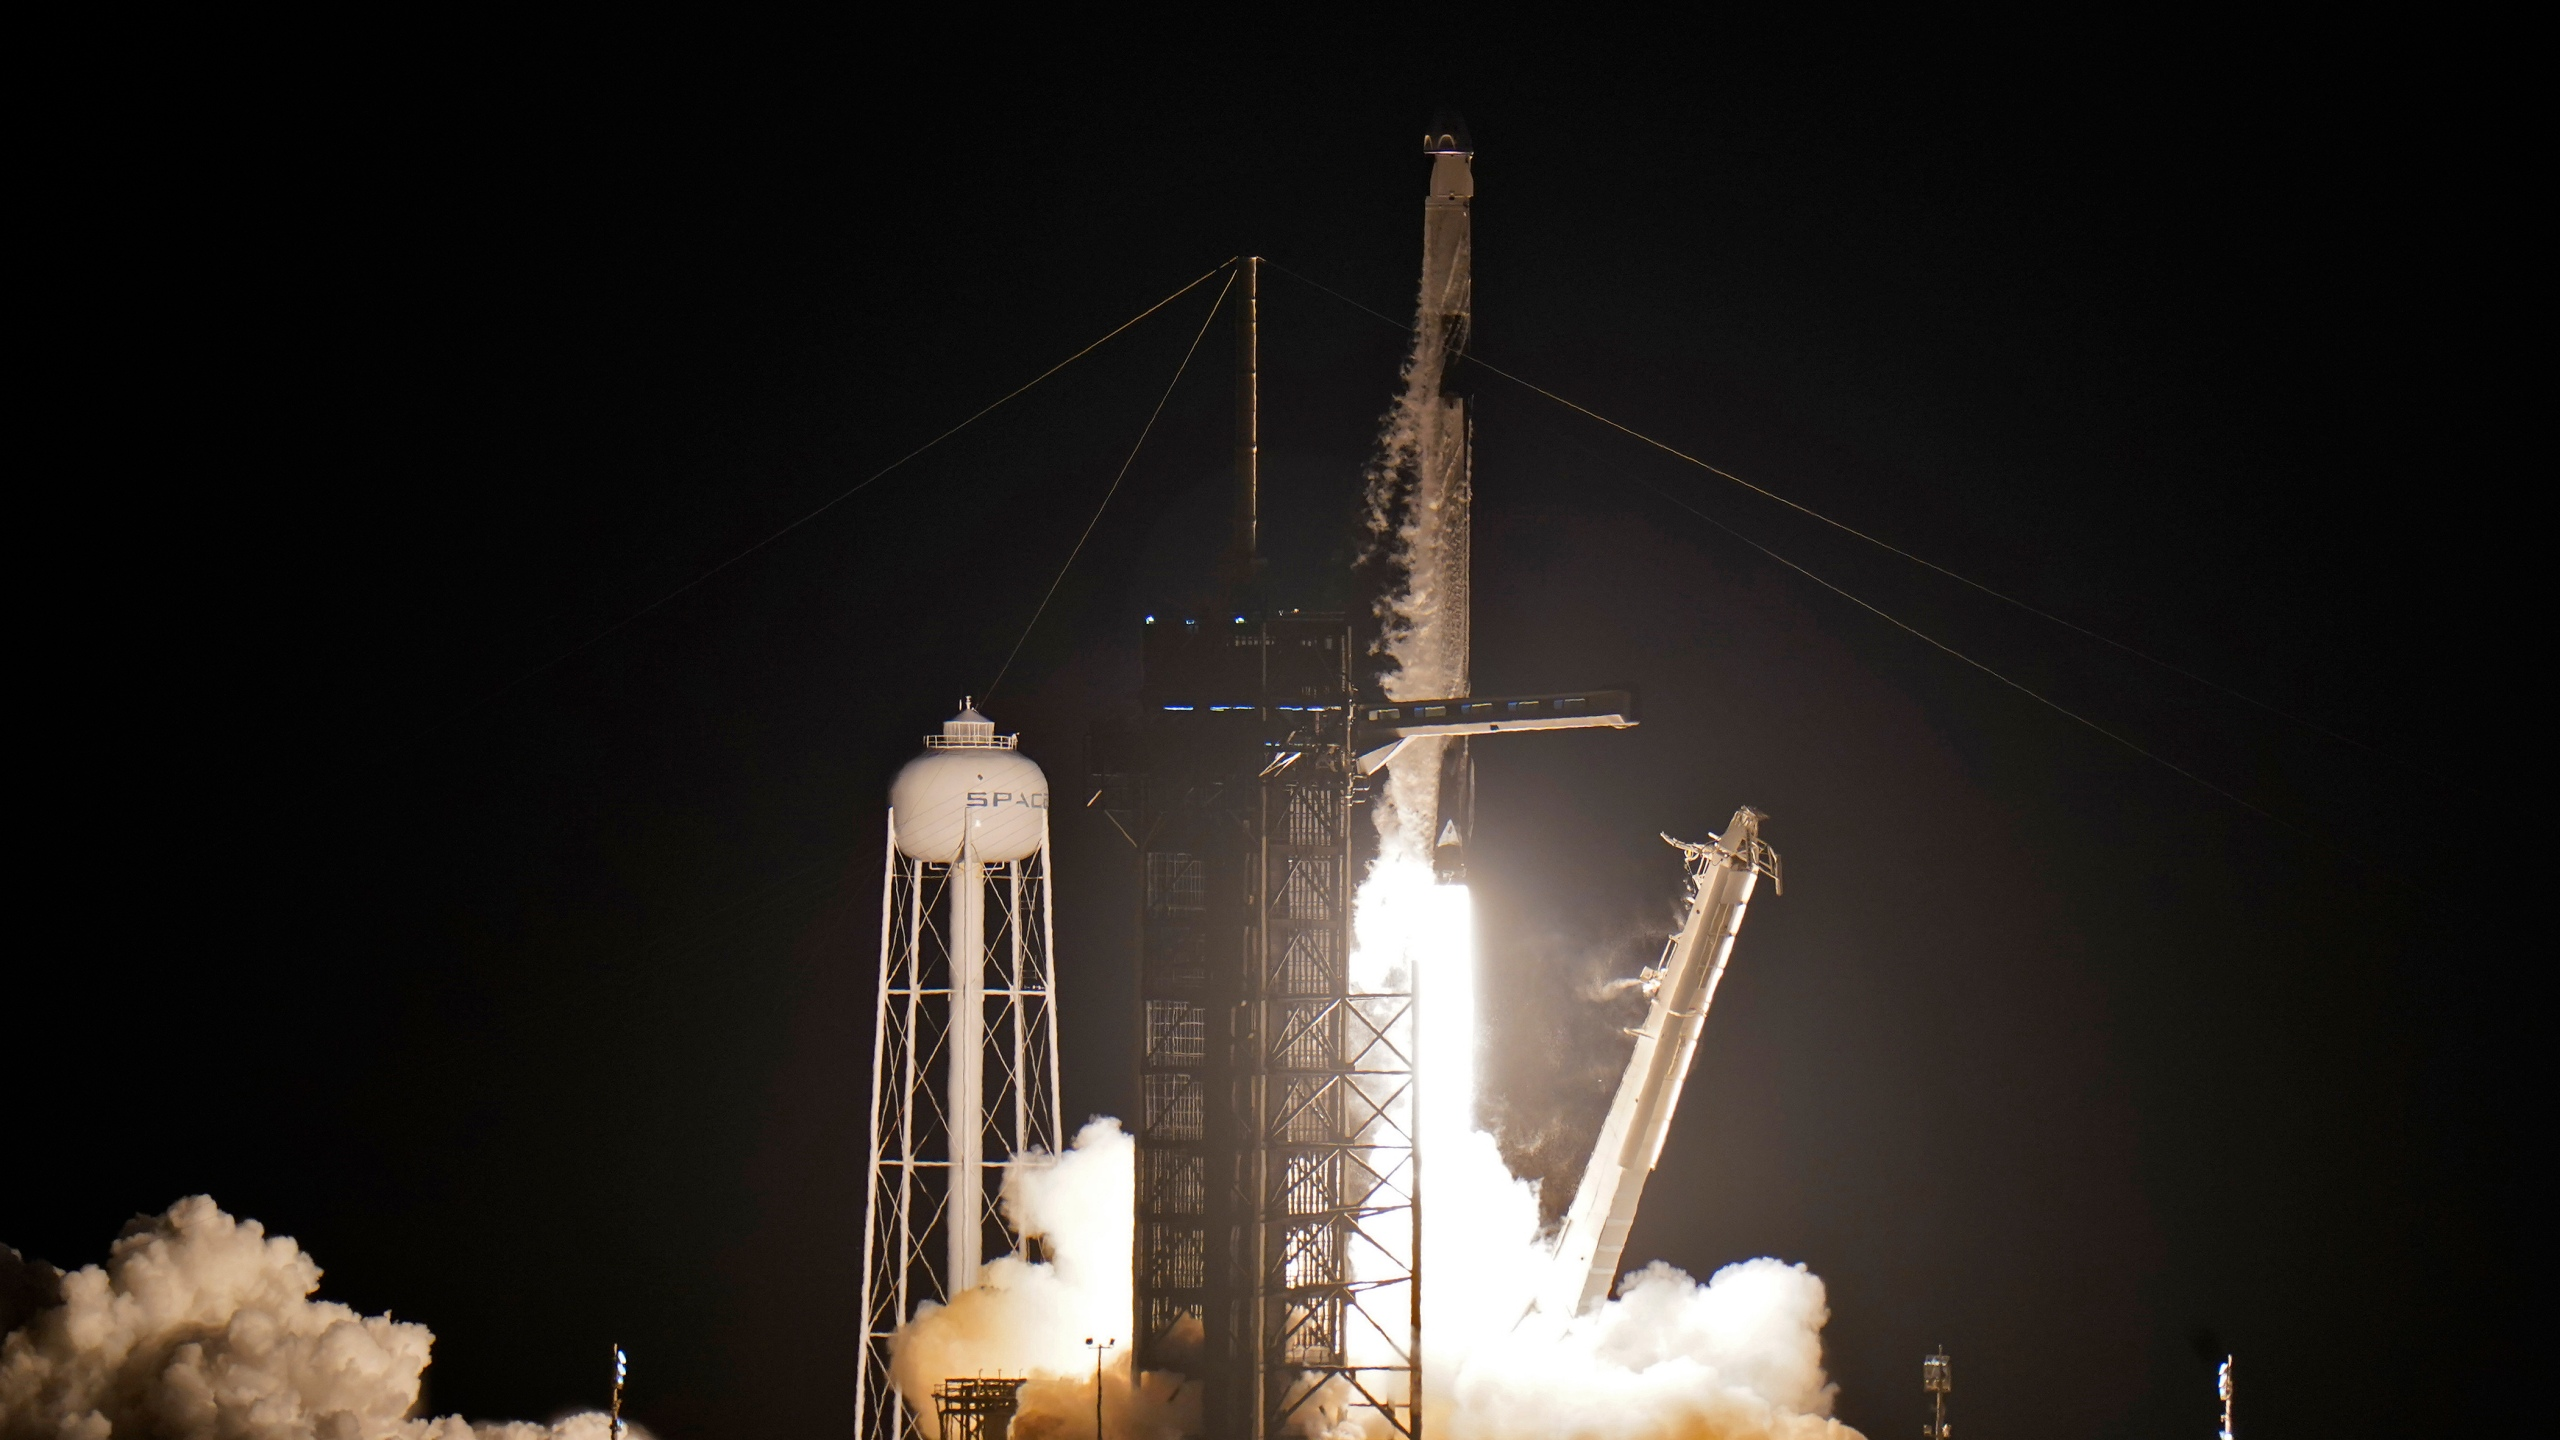 A SpaceX Falcon 9, with four private citizens onboard, lifts off from Kennedy Space Center's Launch Pad 39-A in Cape Canaveral , Fla., on Sept. 15, 2021. (Chris O'Meara / Associated Press)